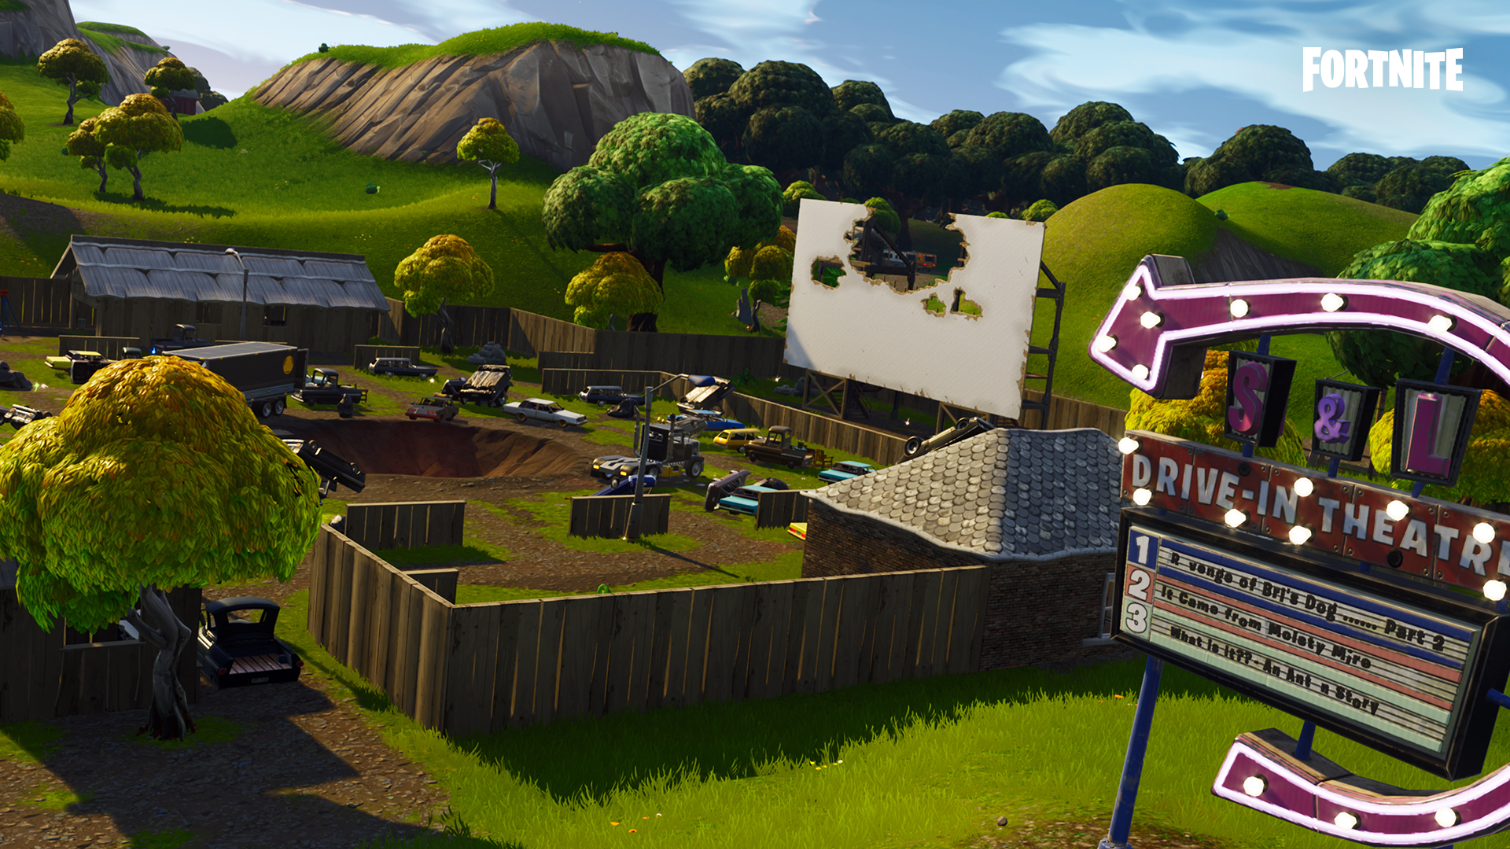 Fortnite Camera Locations: How to Solve the Season 4 Challenge